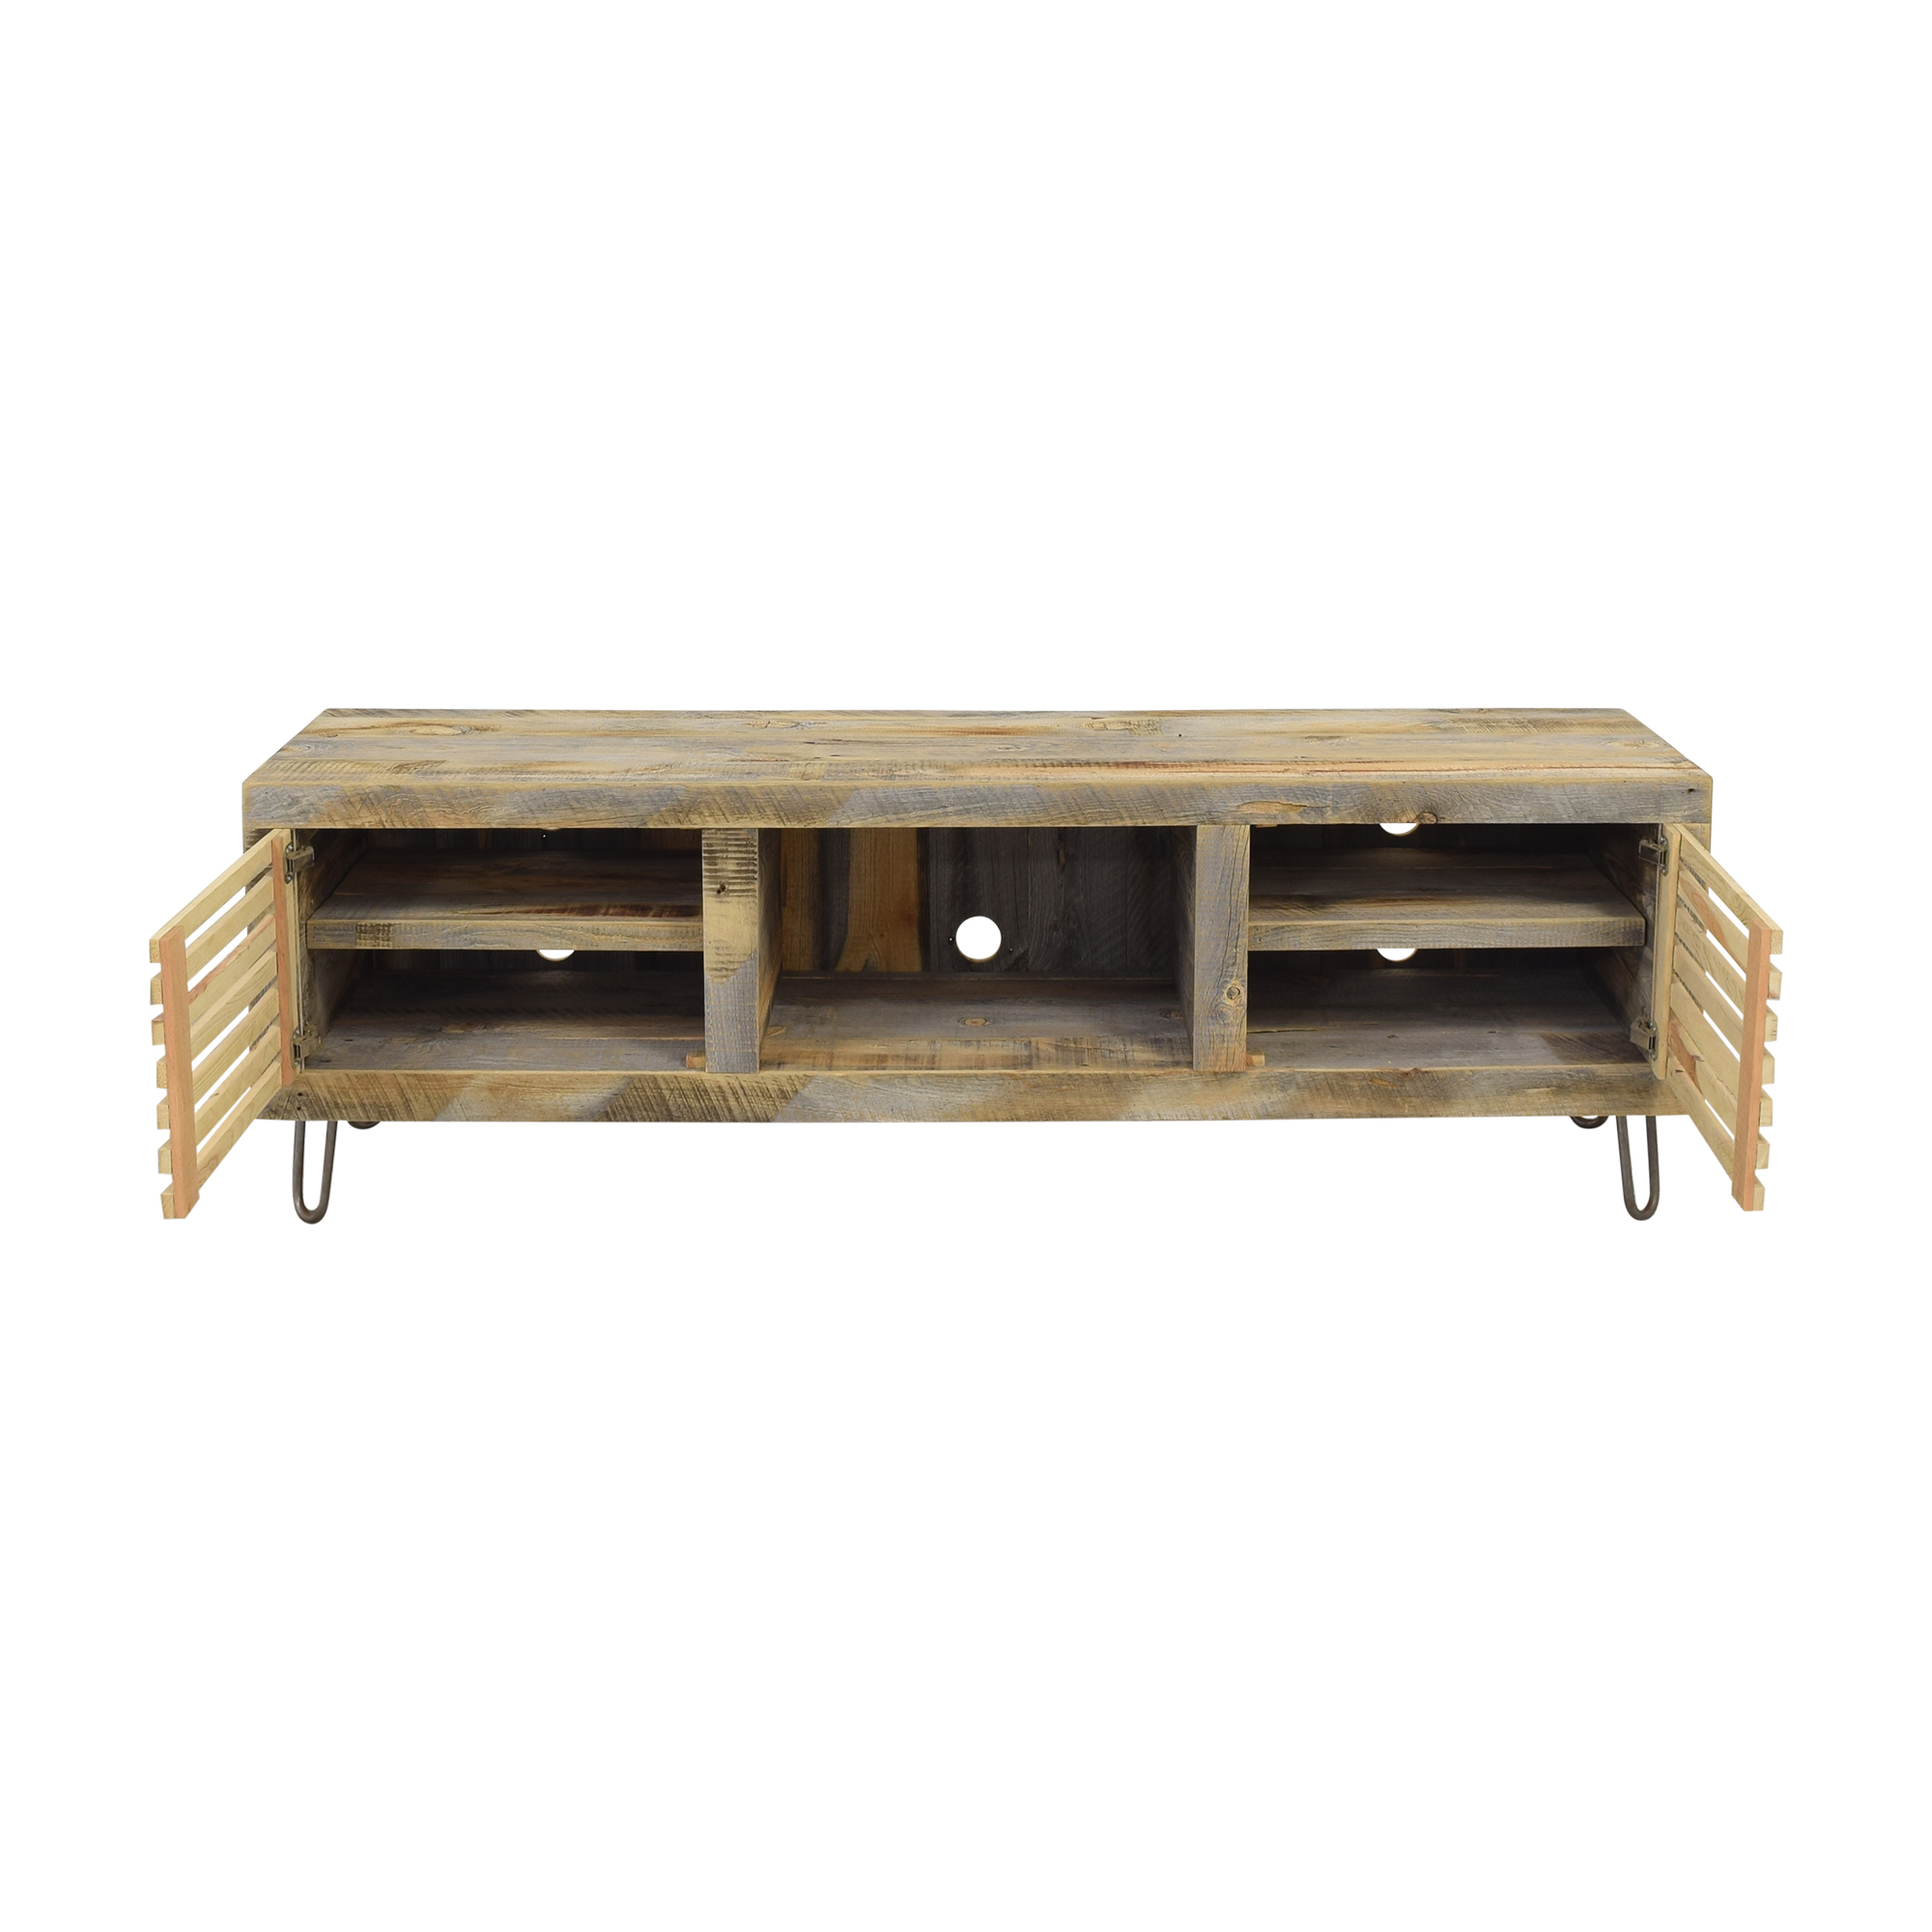 Etsy Etsy Custom Entertainment Stand on sale